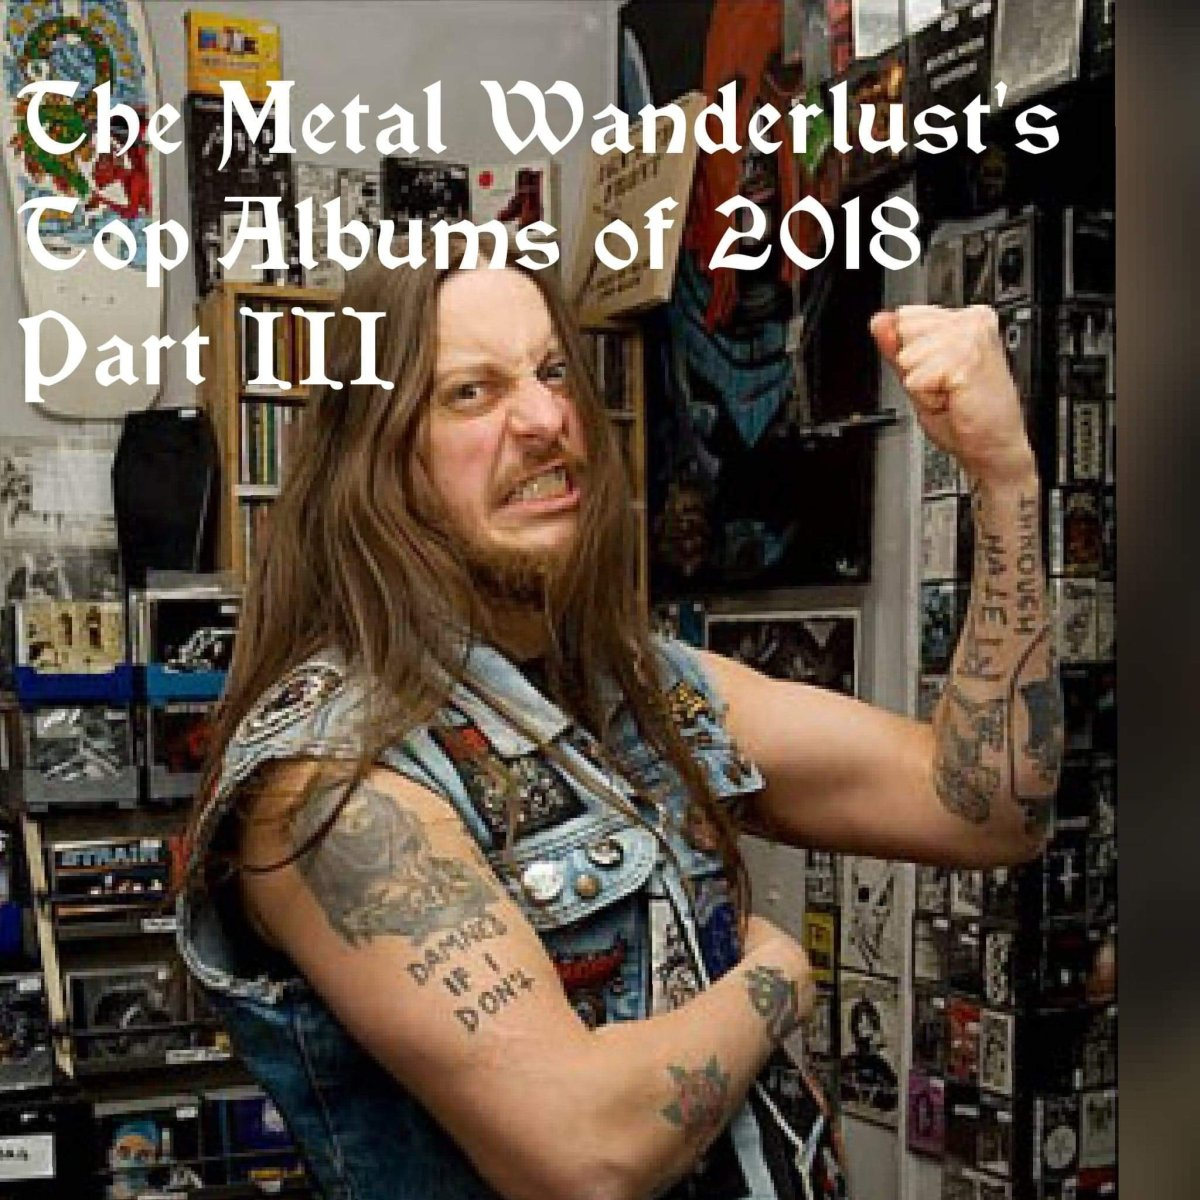 The Metal Wanderlust's Top Albums Of 2018 - Part III